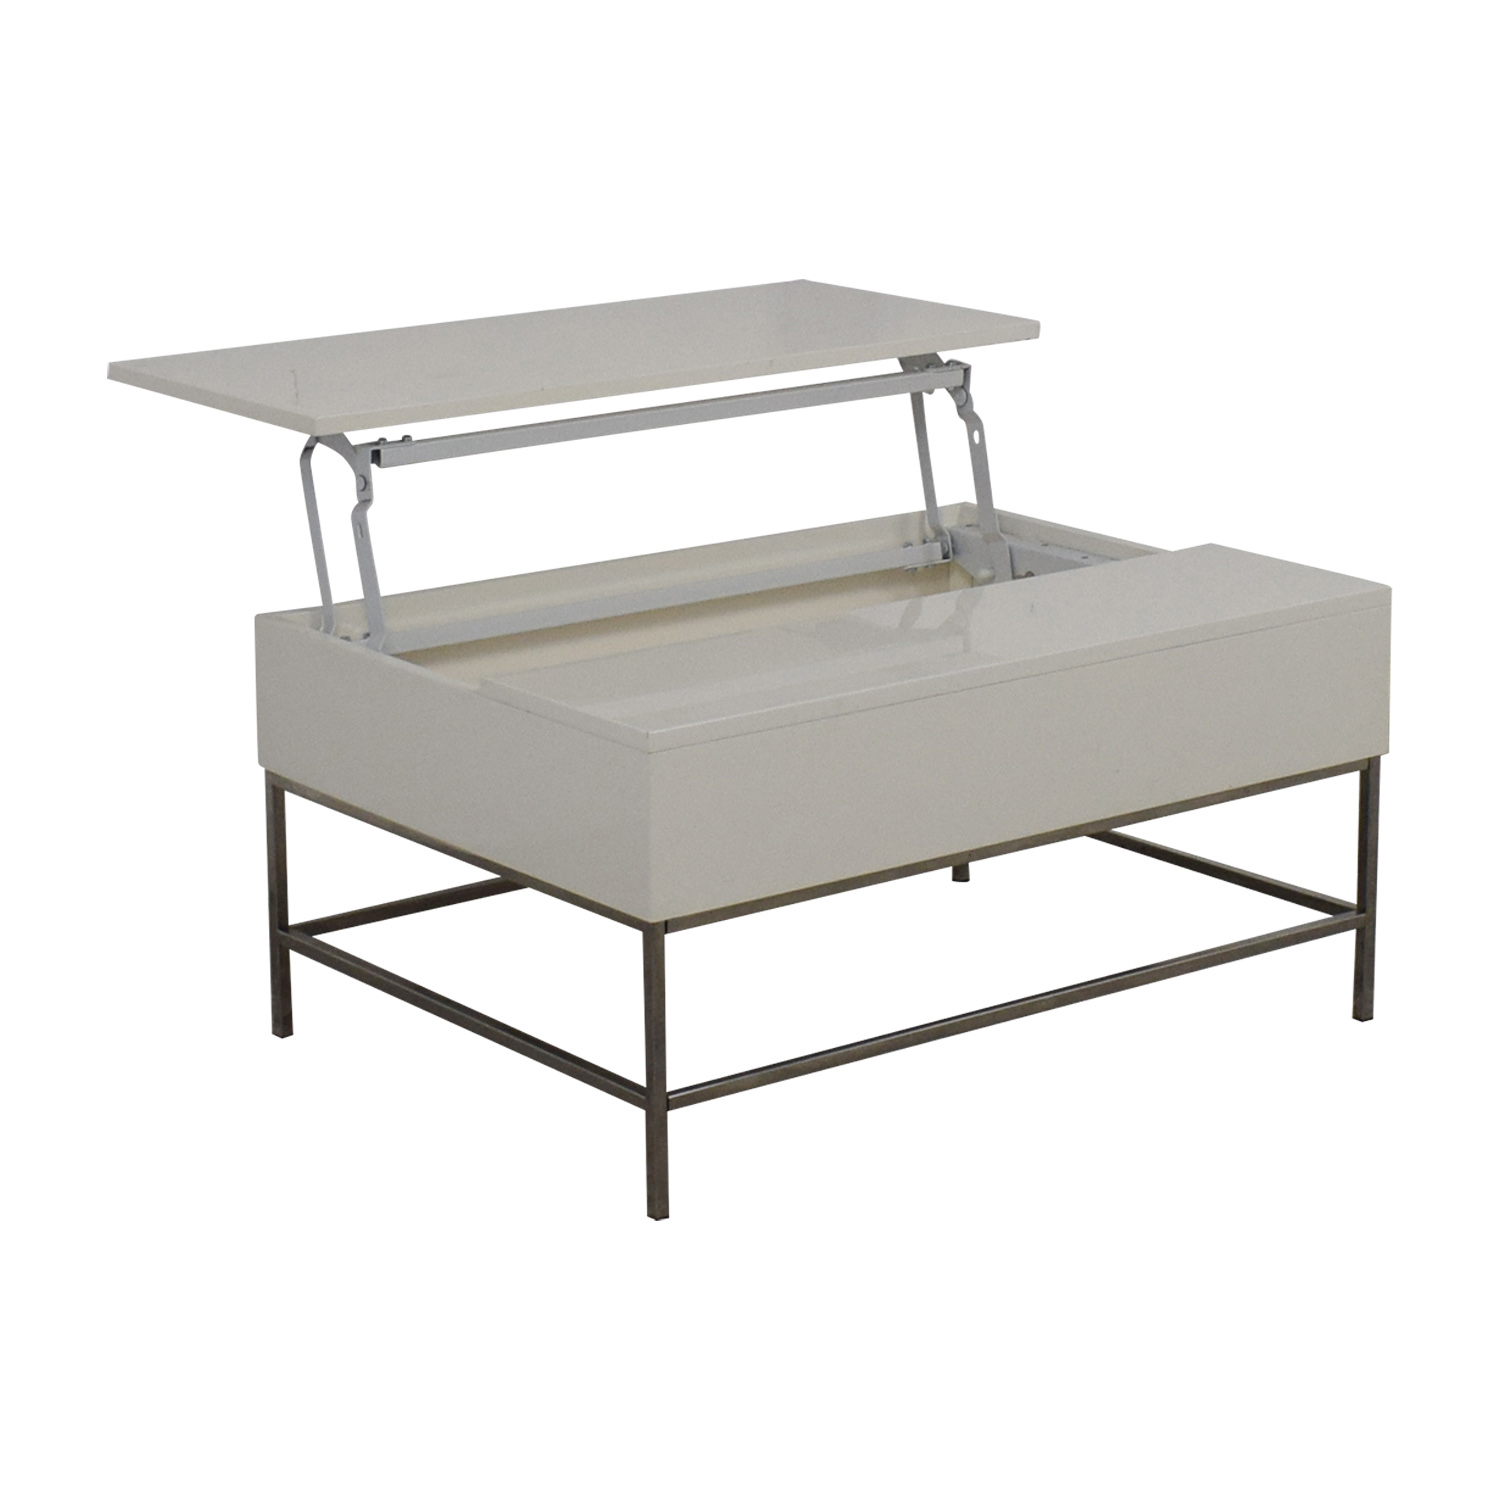 West Elm West Elm Lift-Top White Coffee Table